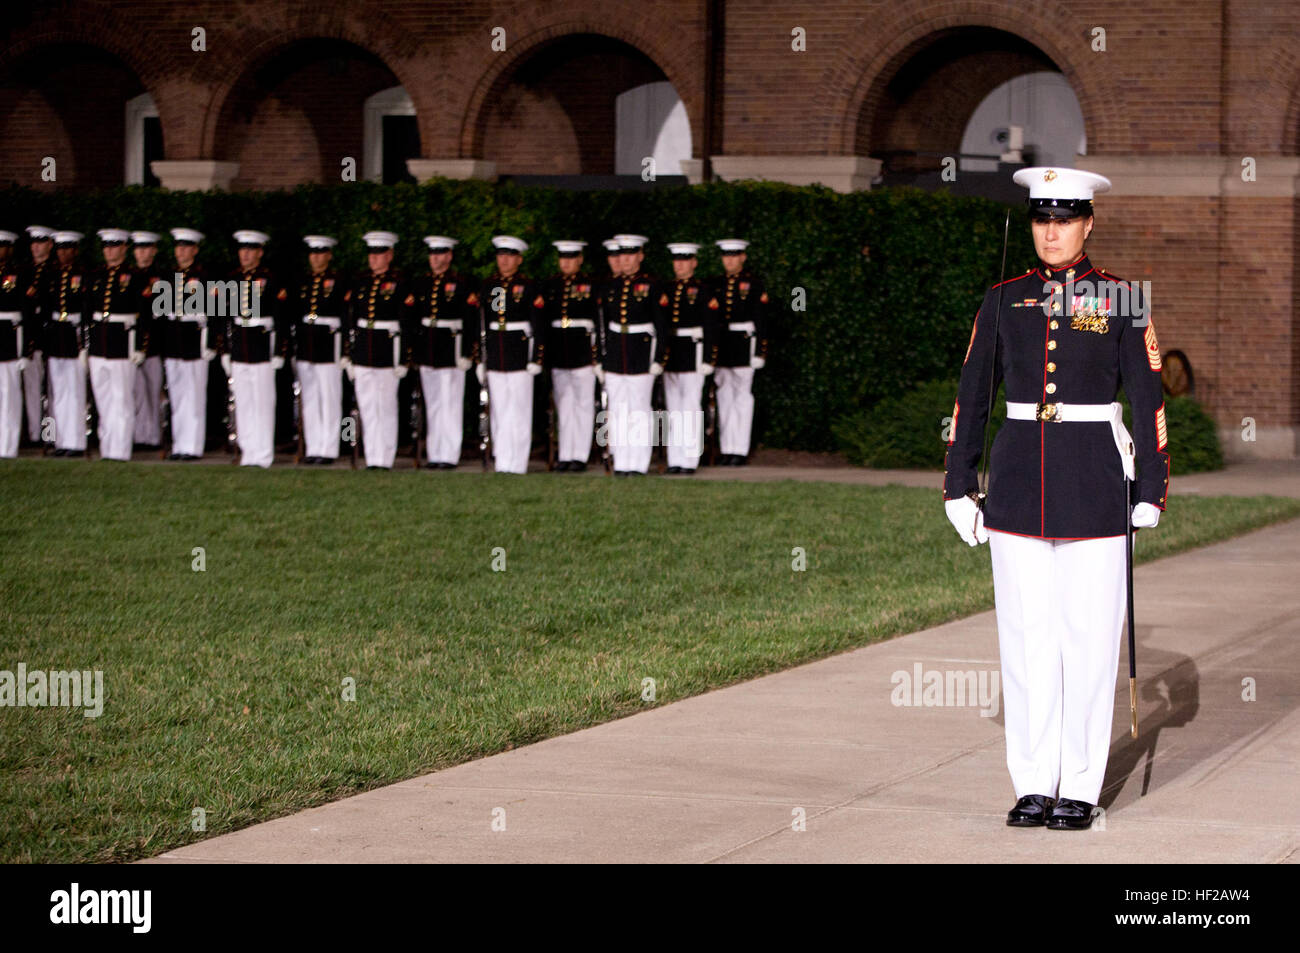 The Sergeant Major of Marine Barracks Washington, Sgt. Maj. Angela Maness, stands at center walk during an Evening Stock Photo